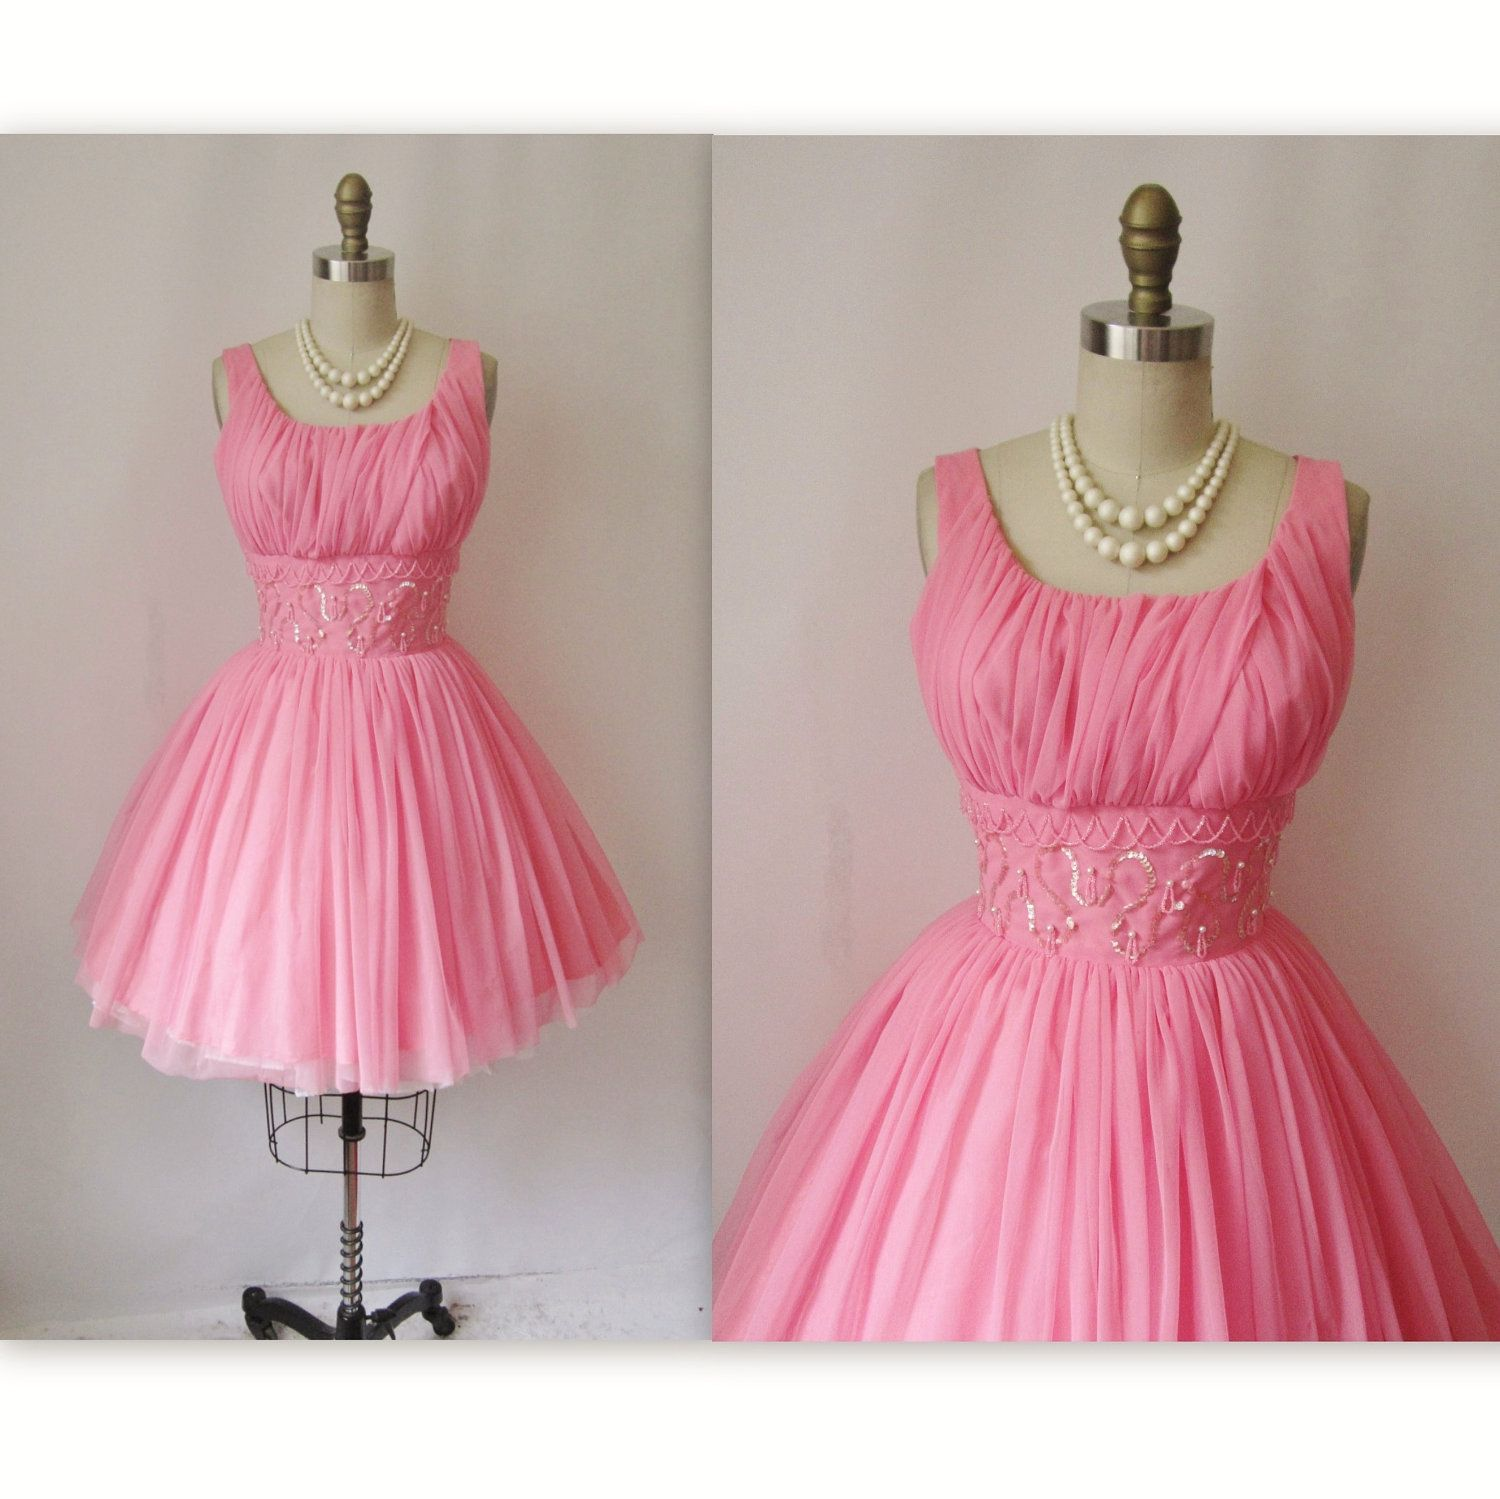 cupcakes and bubblegum...i love this vintage dress!